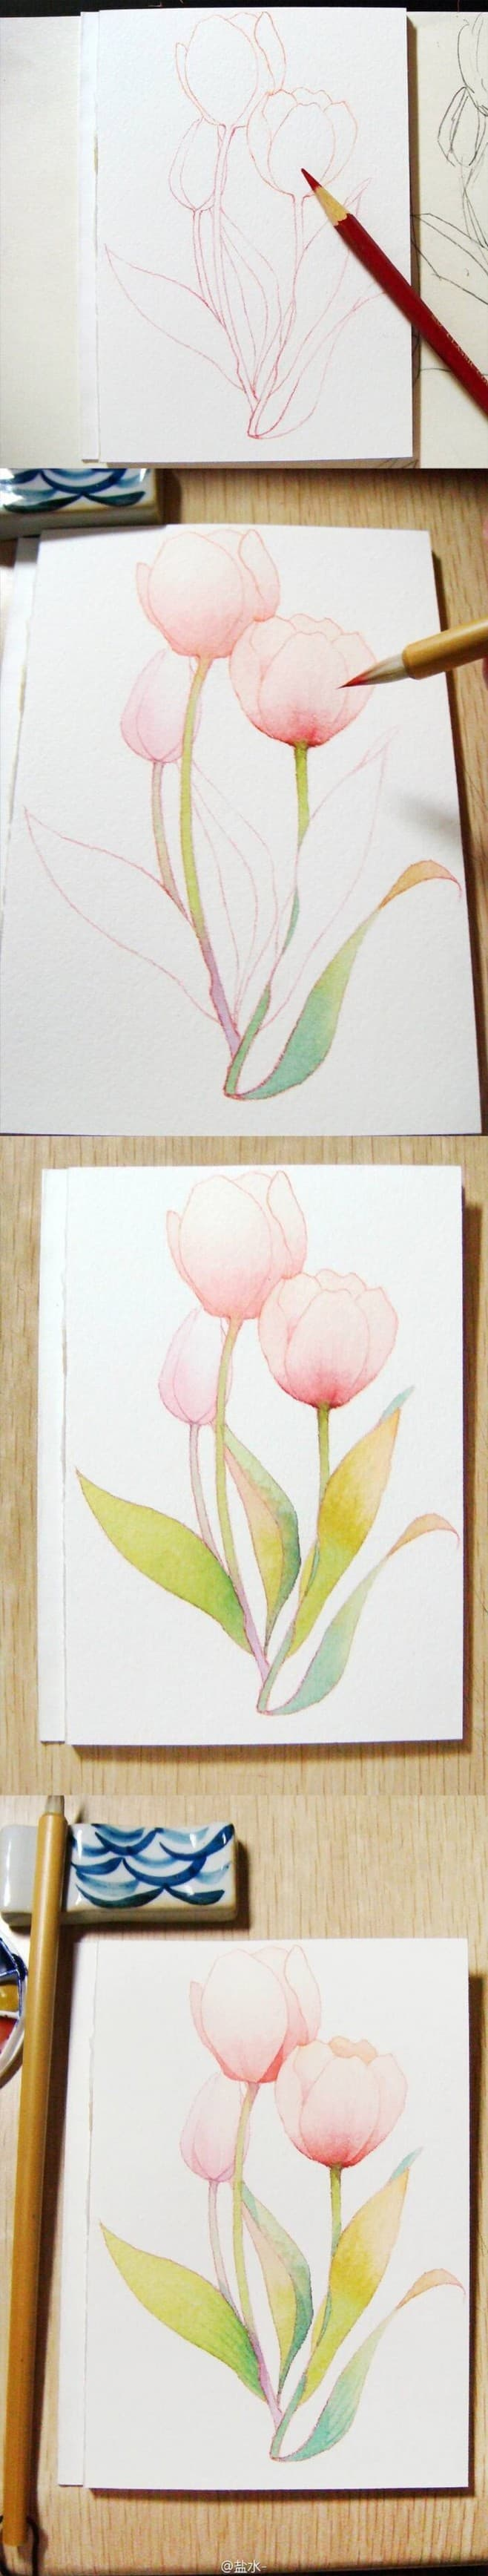 7. START WITH SOME SIMPLE FLOWERS LIKE A BOUQUET OF SPRING TULIPS